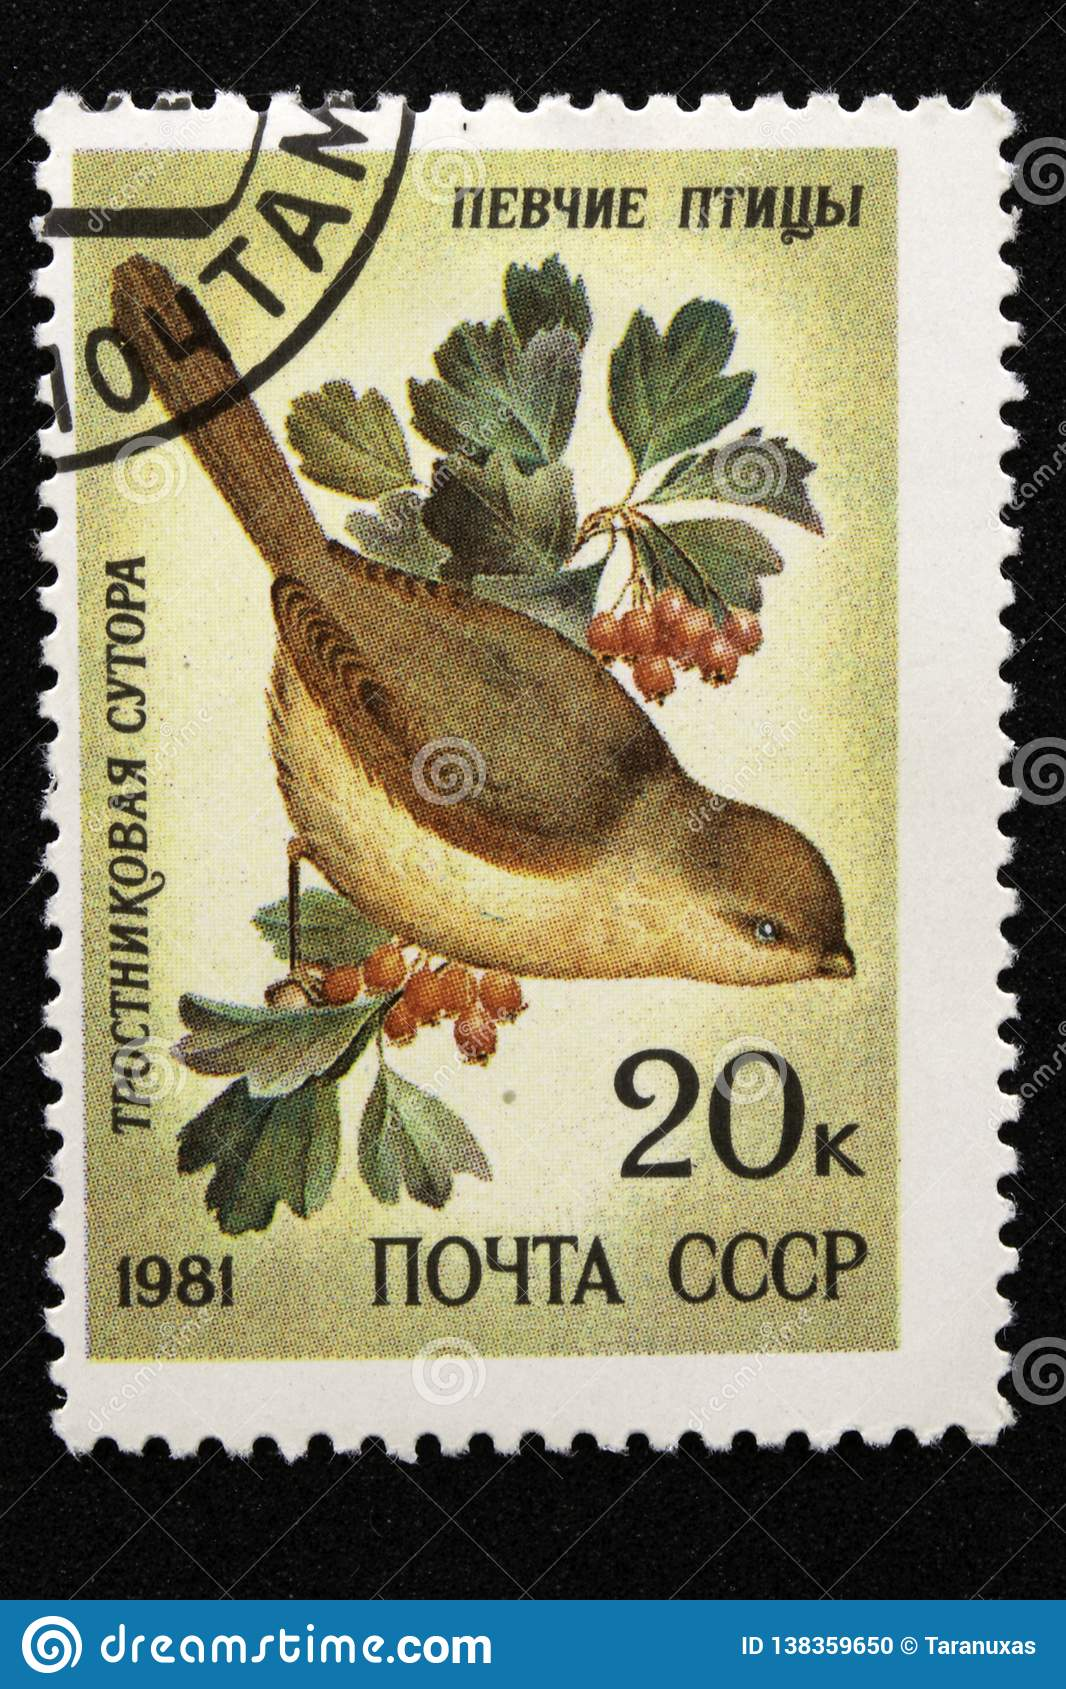 El sello de URSS, serie - Songbirds, 1981